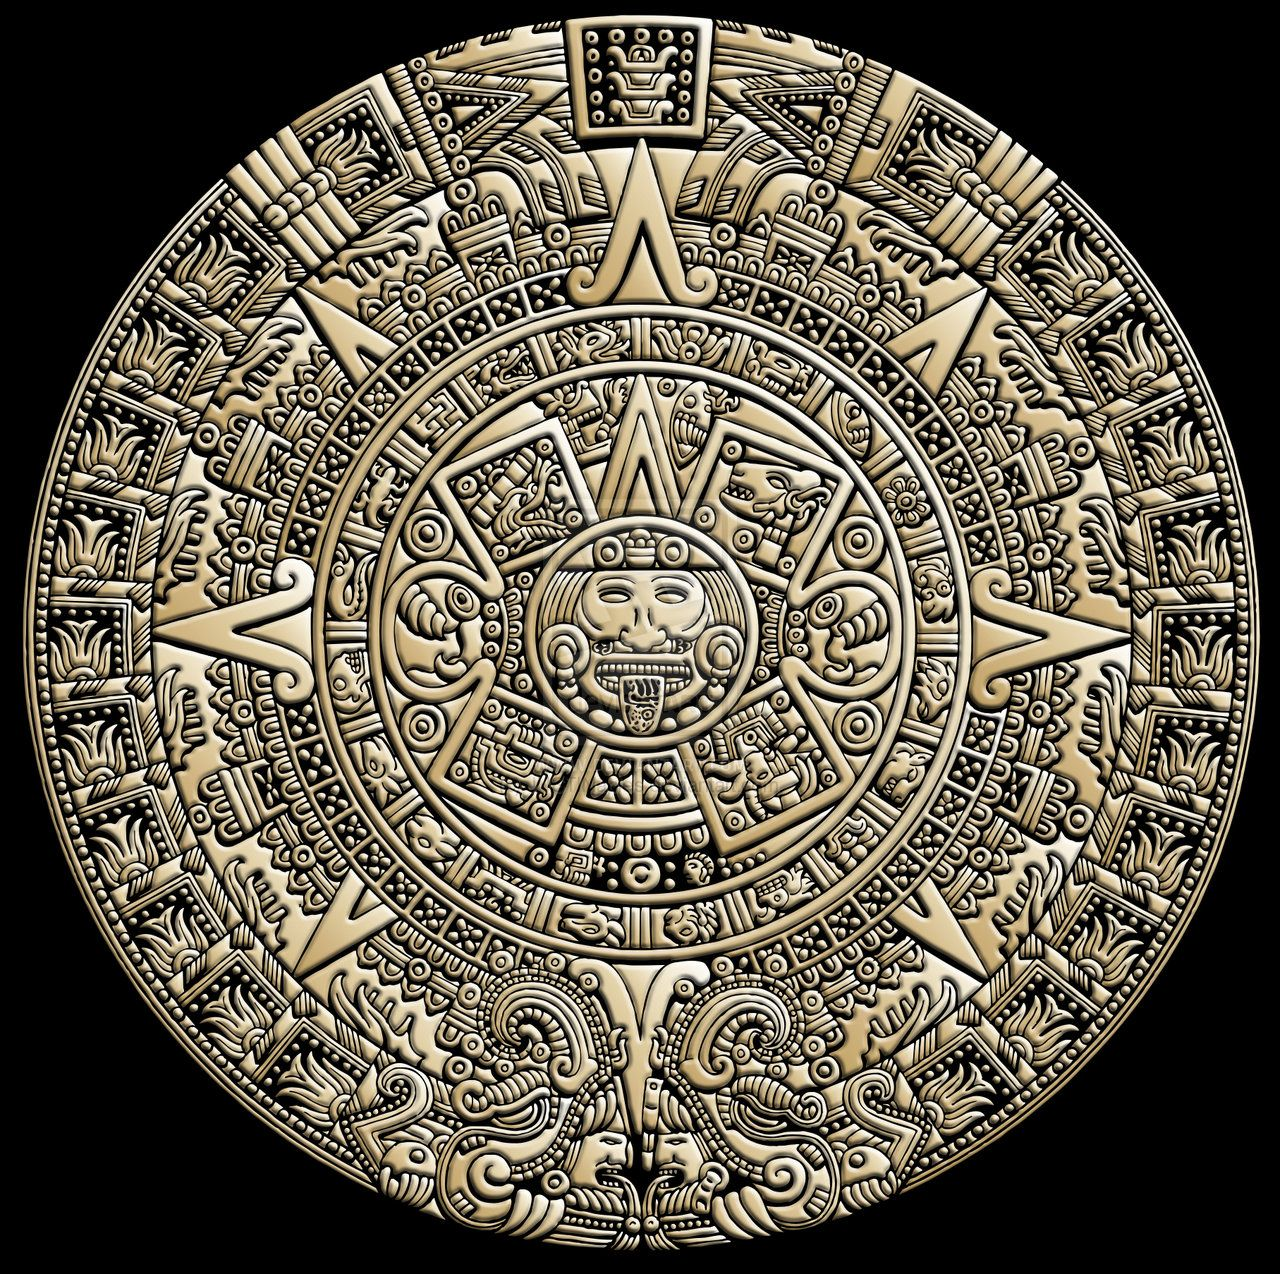 1280x1274 Aztec Calendar By ~justinaples On Ink And Papyrus